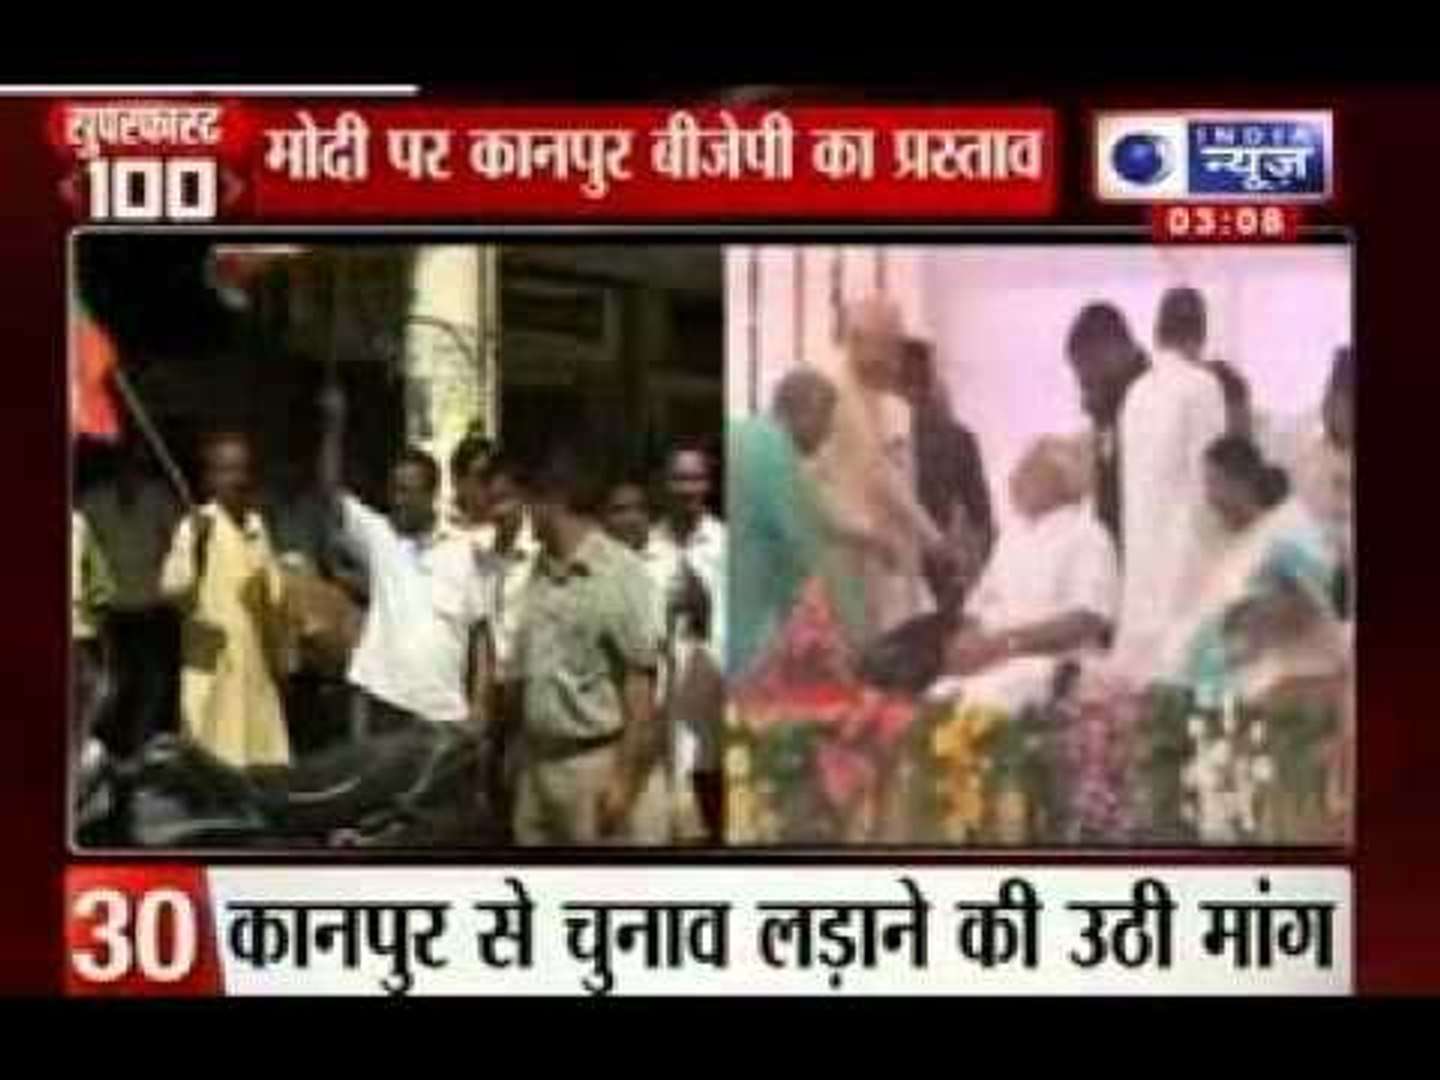 India News: Superfast 100 News on 16 September 2013